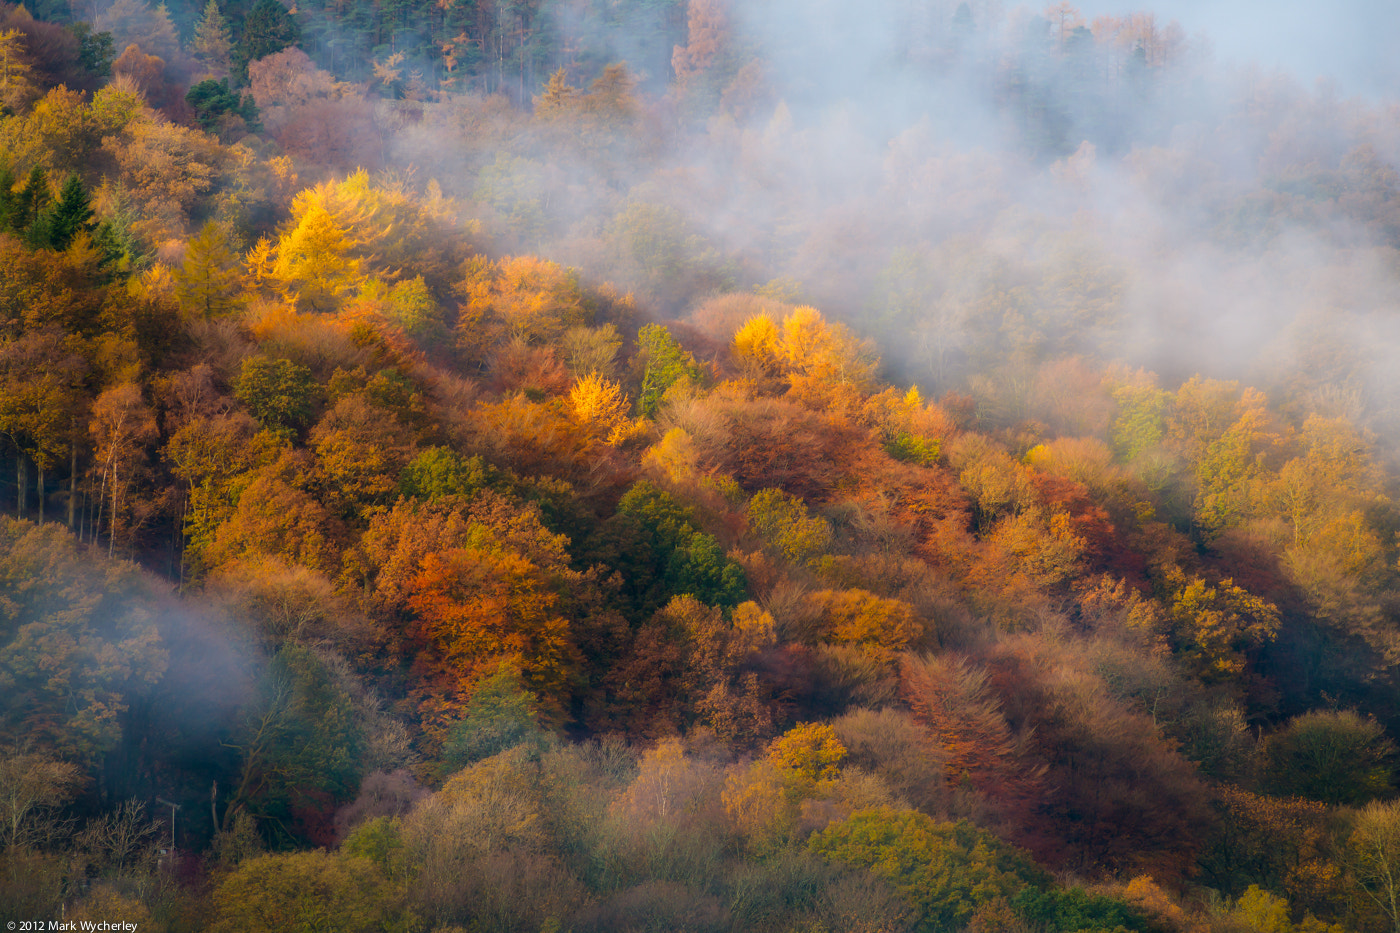 Photograph Autumn mists by Mark Wycherley on 500px